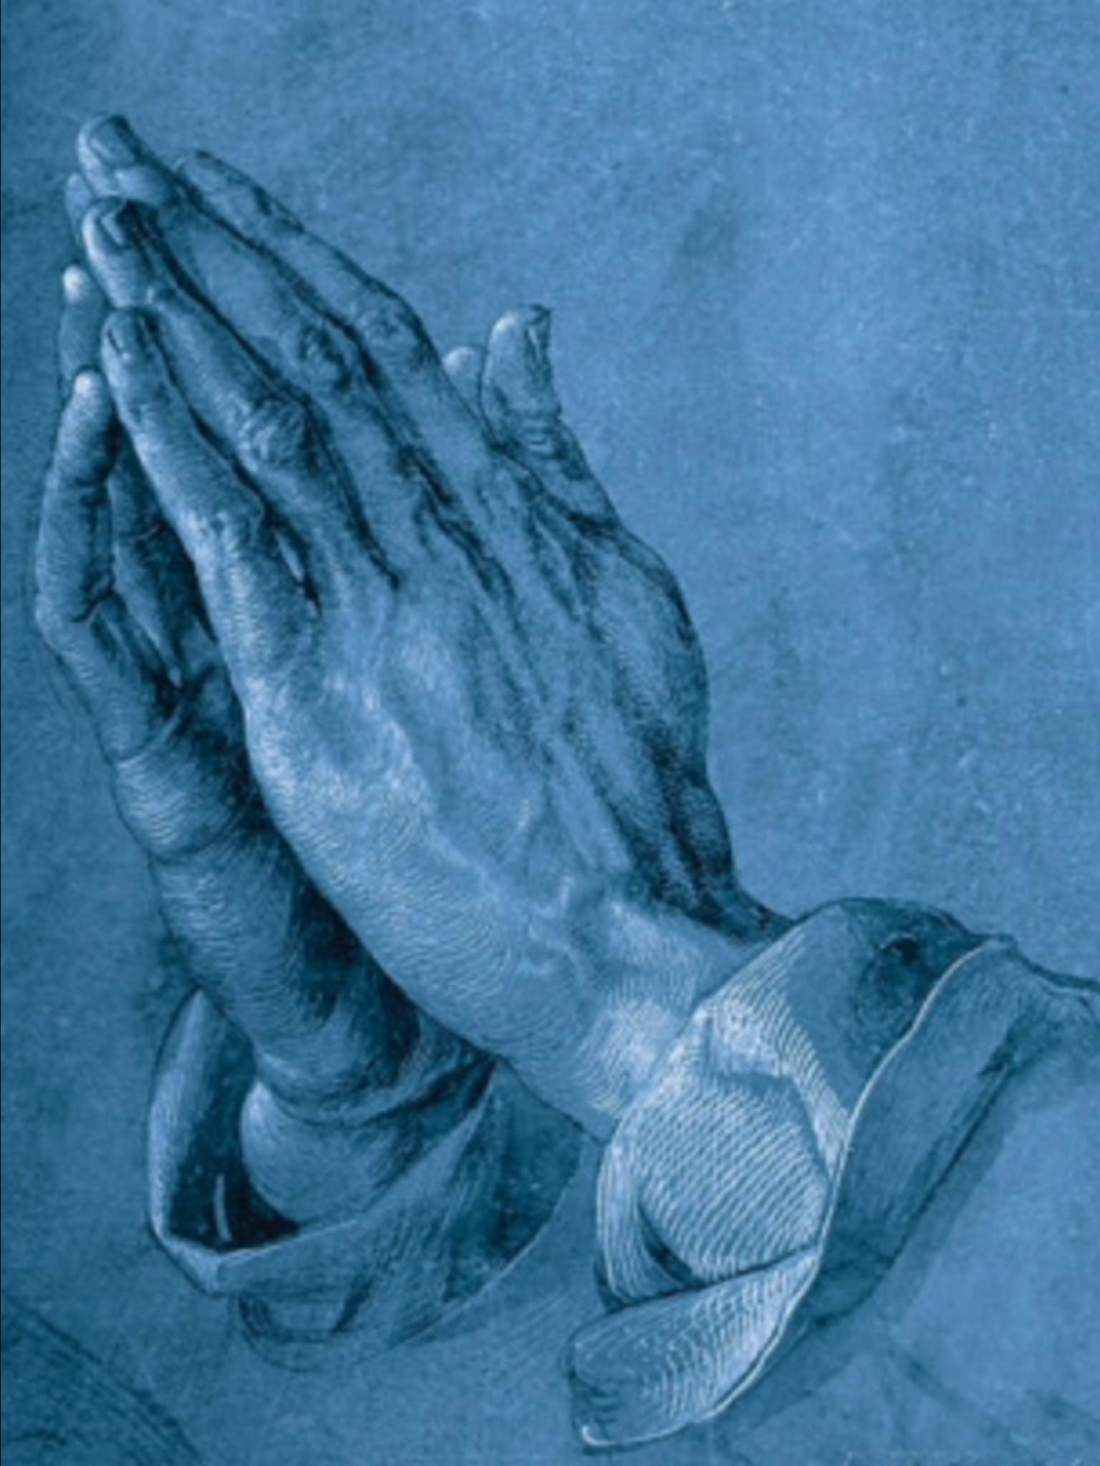 Praying-Hands-Image